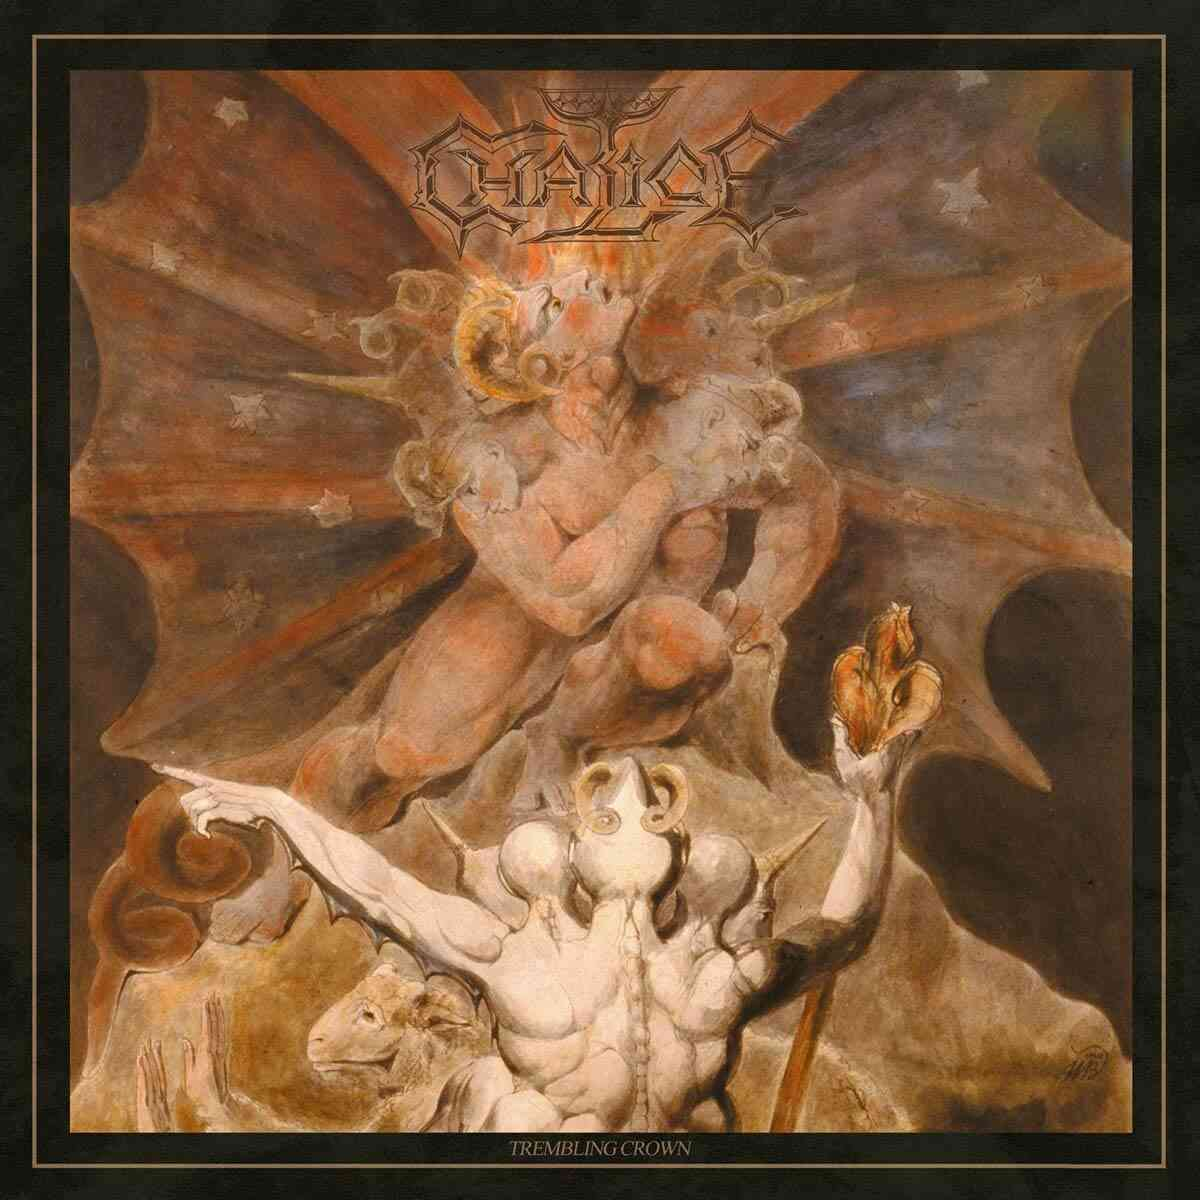 Chalice - Trembling Crown - album cover